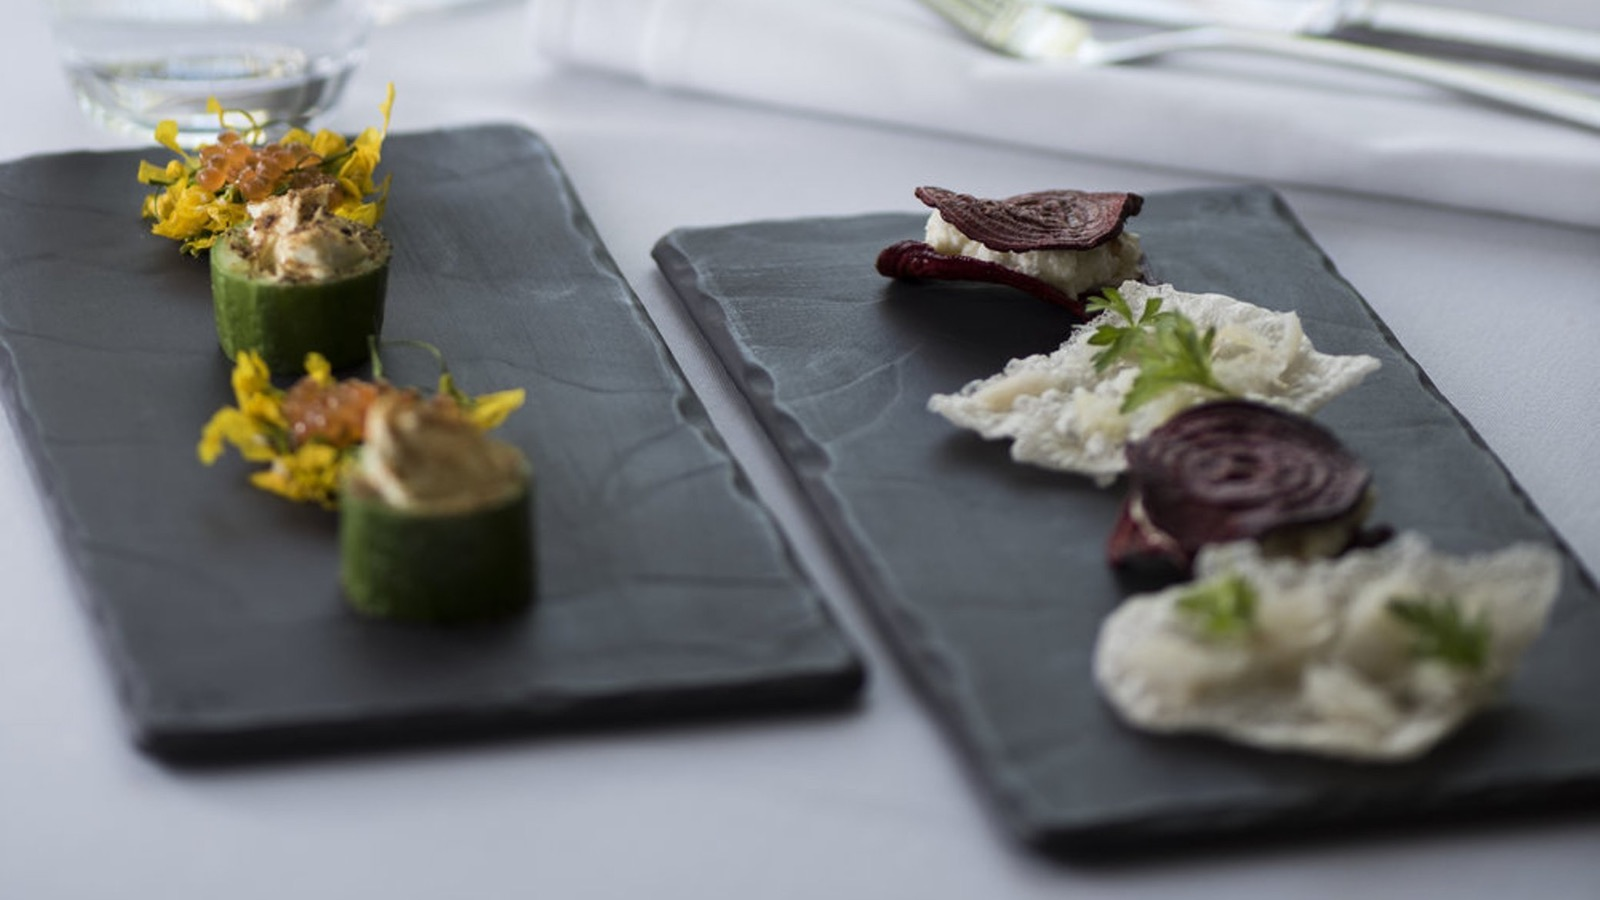 Award winning food at Gladioli